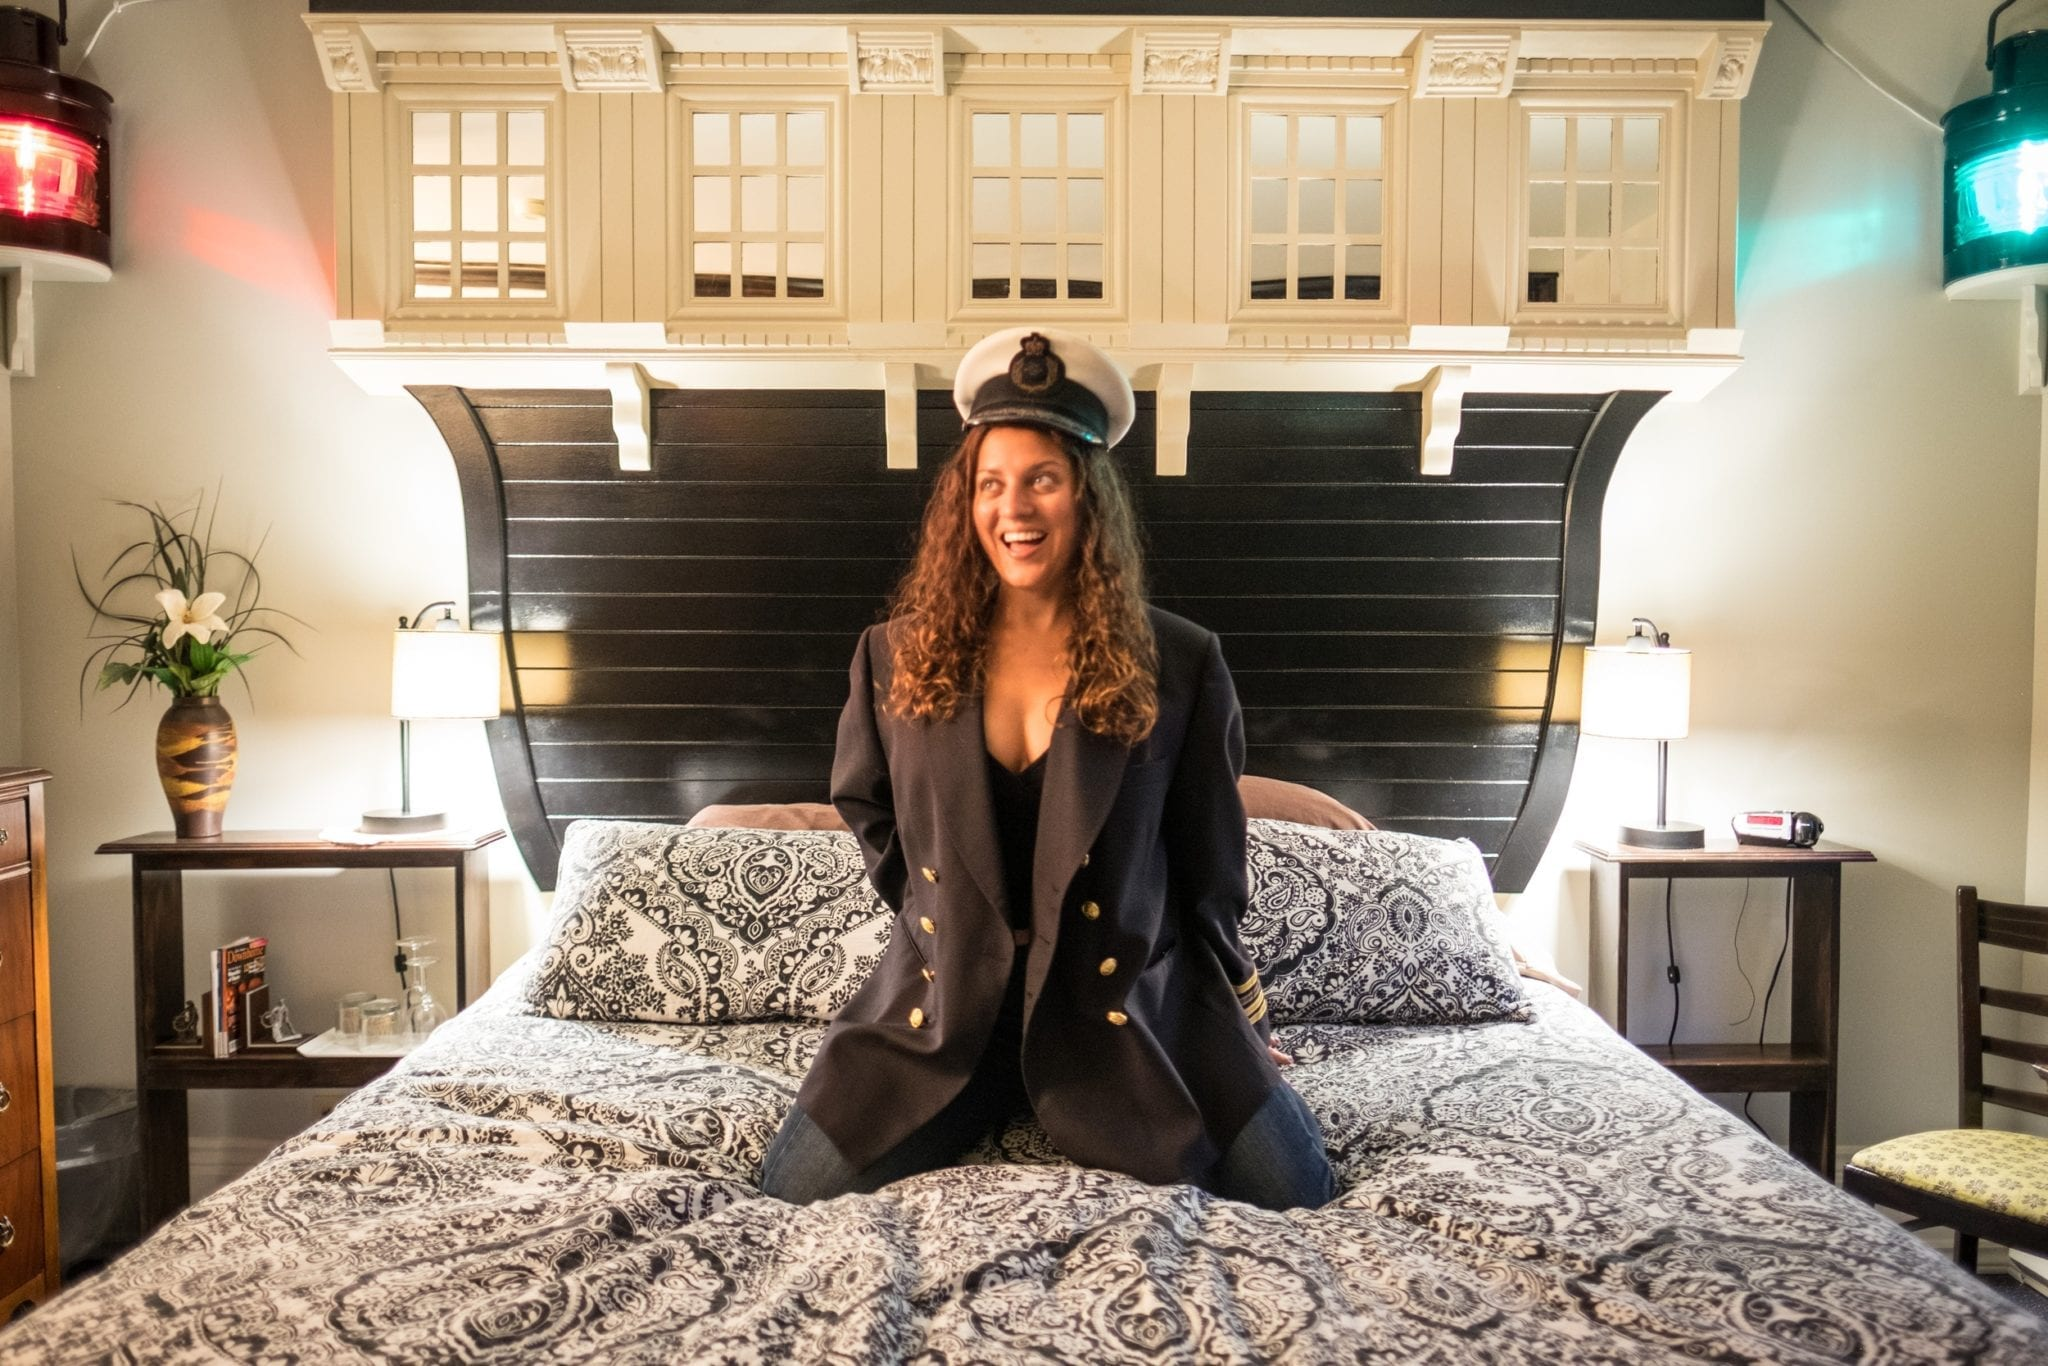 Kate does a split on a bed with a headboard that looks like the front of a ship. Nautical lights, red and green, glow behind her. She wears a captain's hat and blazer.